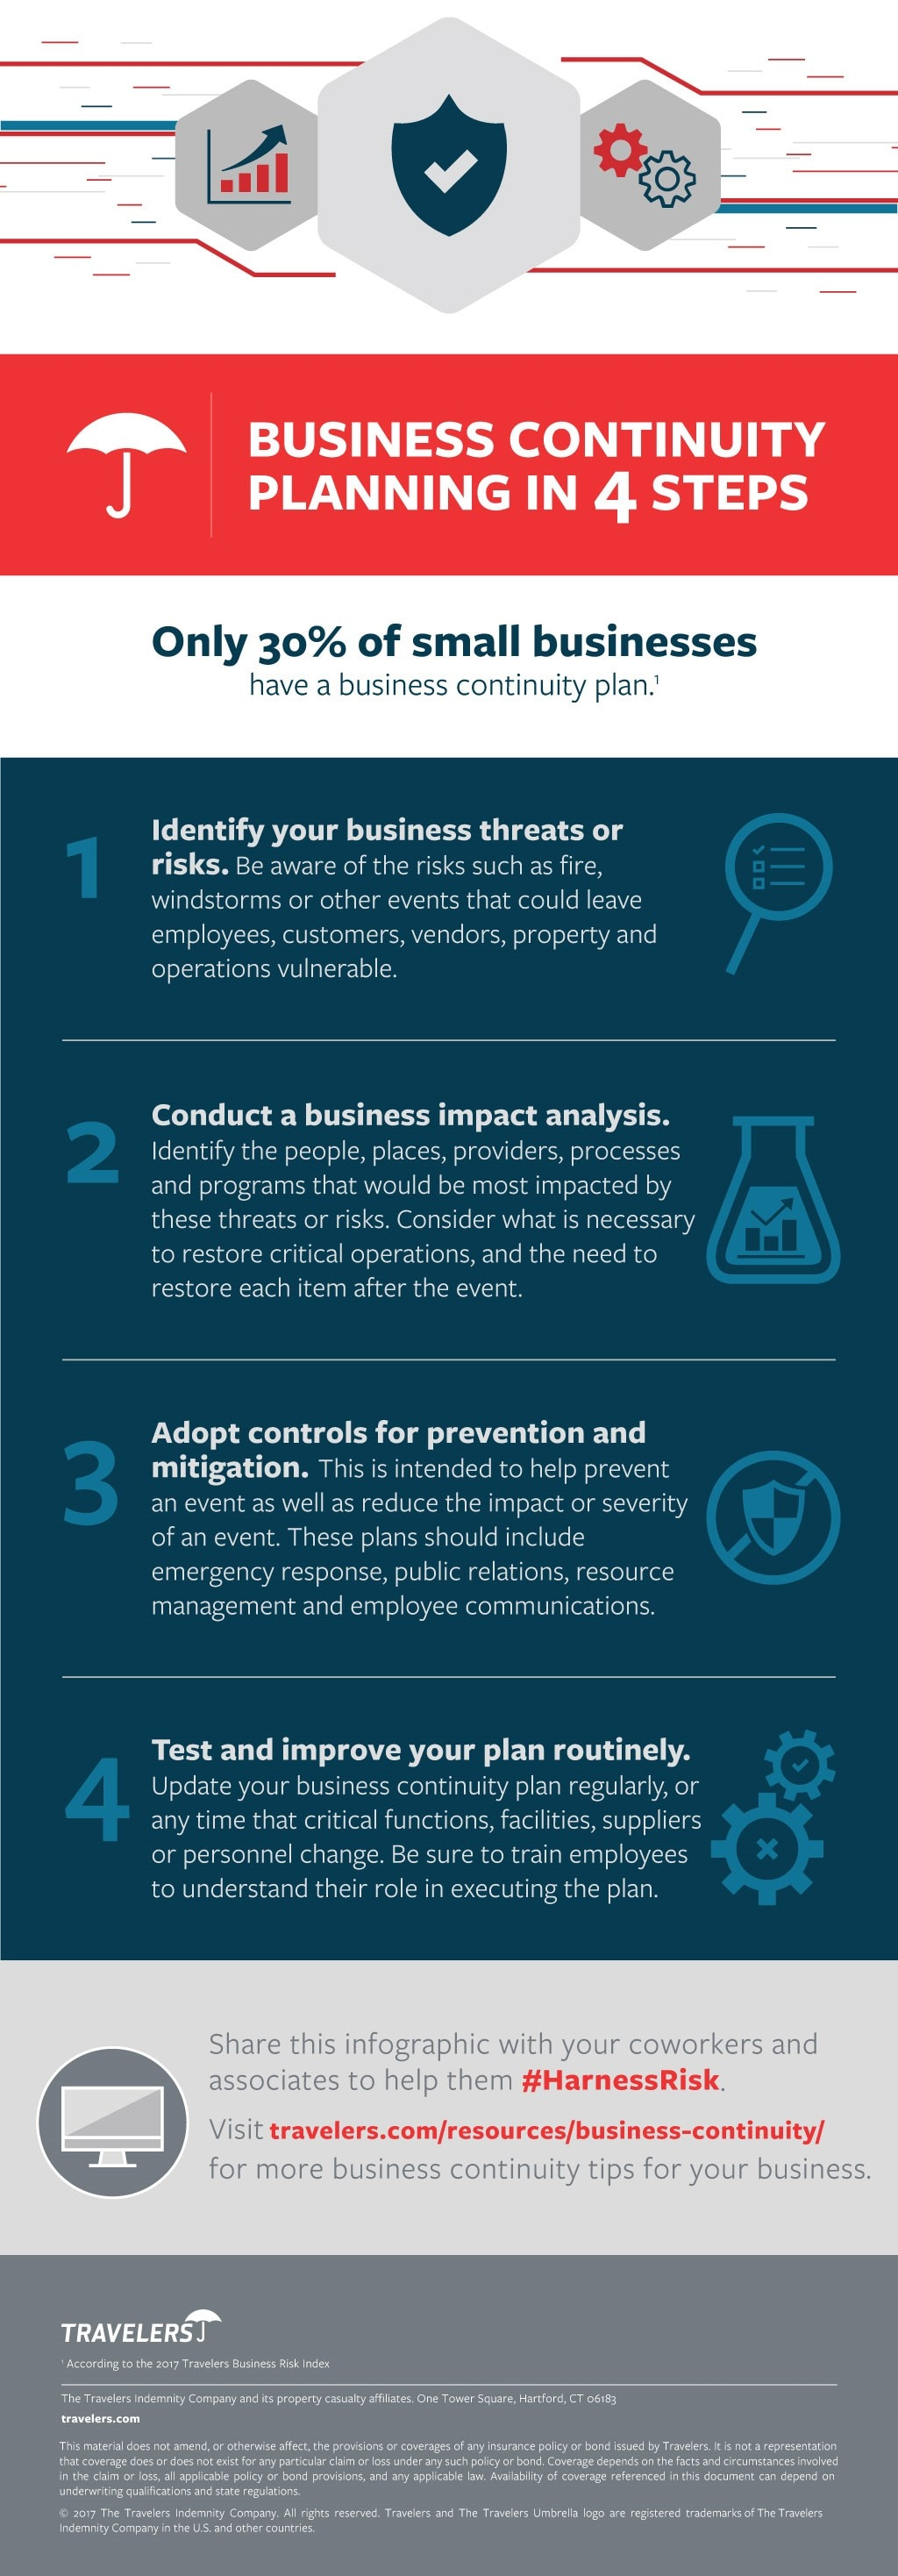 Business continuity planning in 4 steps infographic